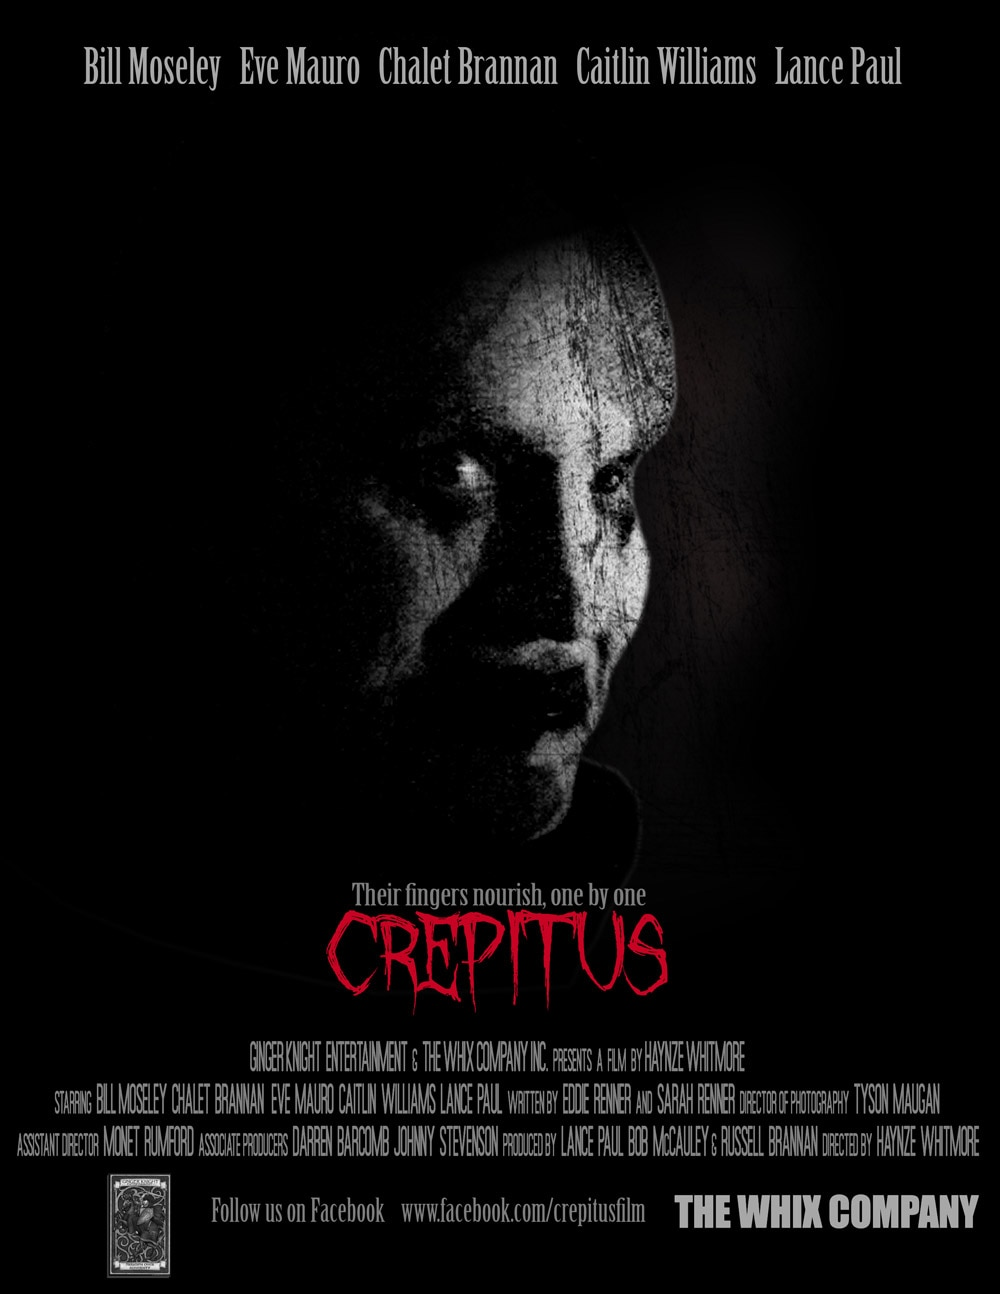 Crepitus Poster - Second Crepitus Trailer Ain't Clowning Around